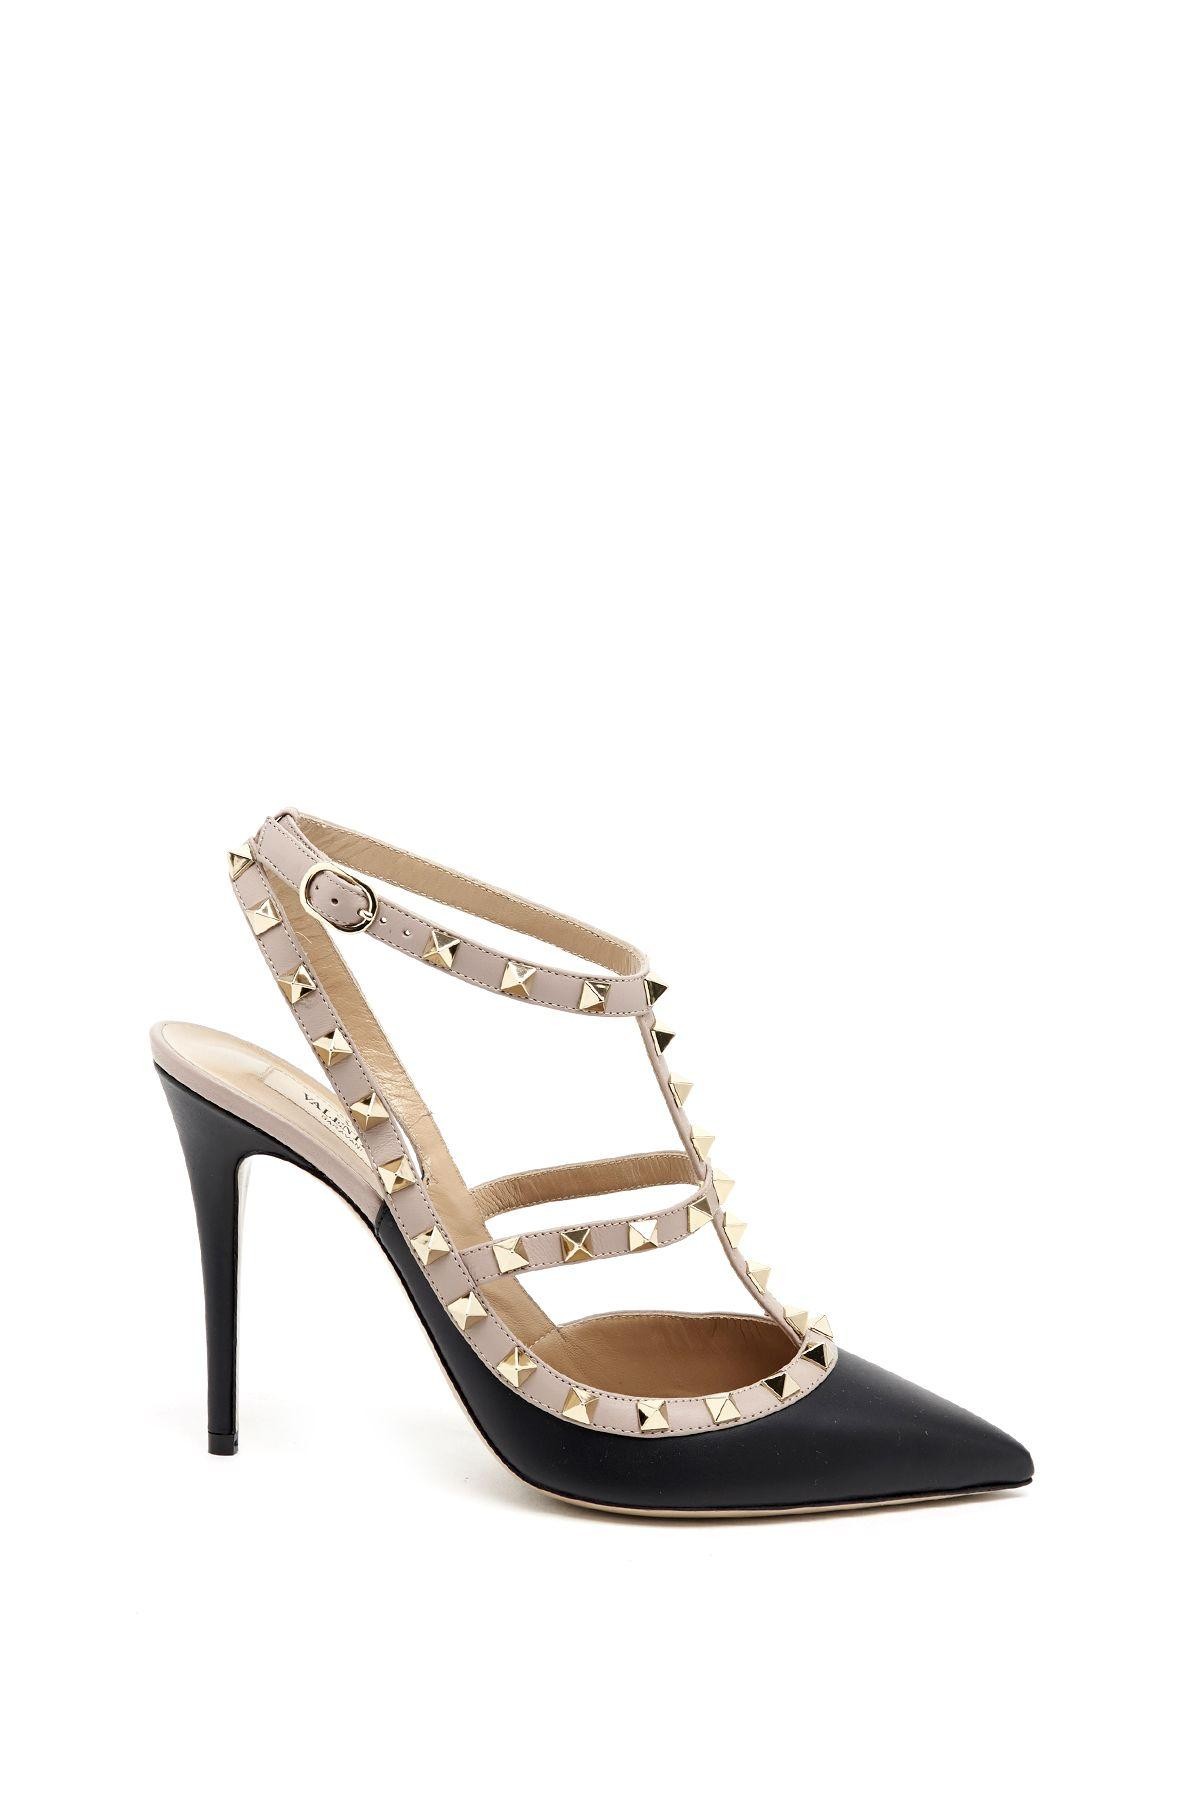 Valentino Shoes In Black